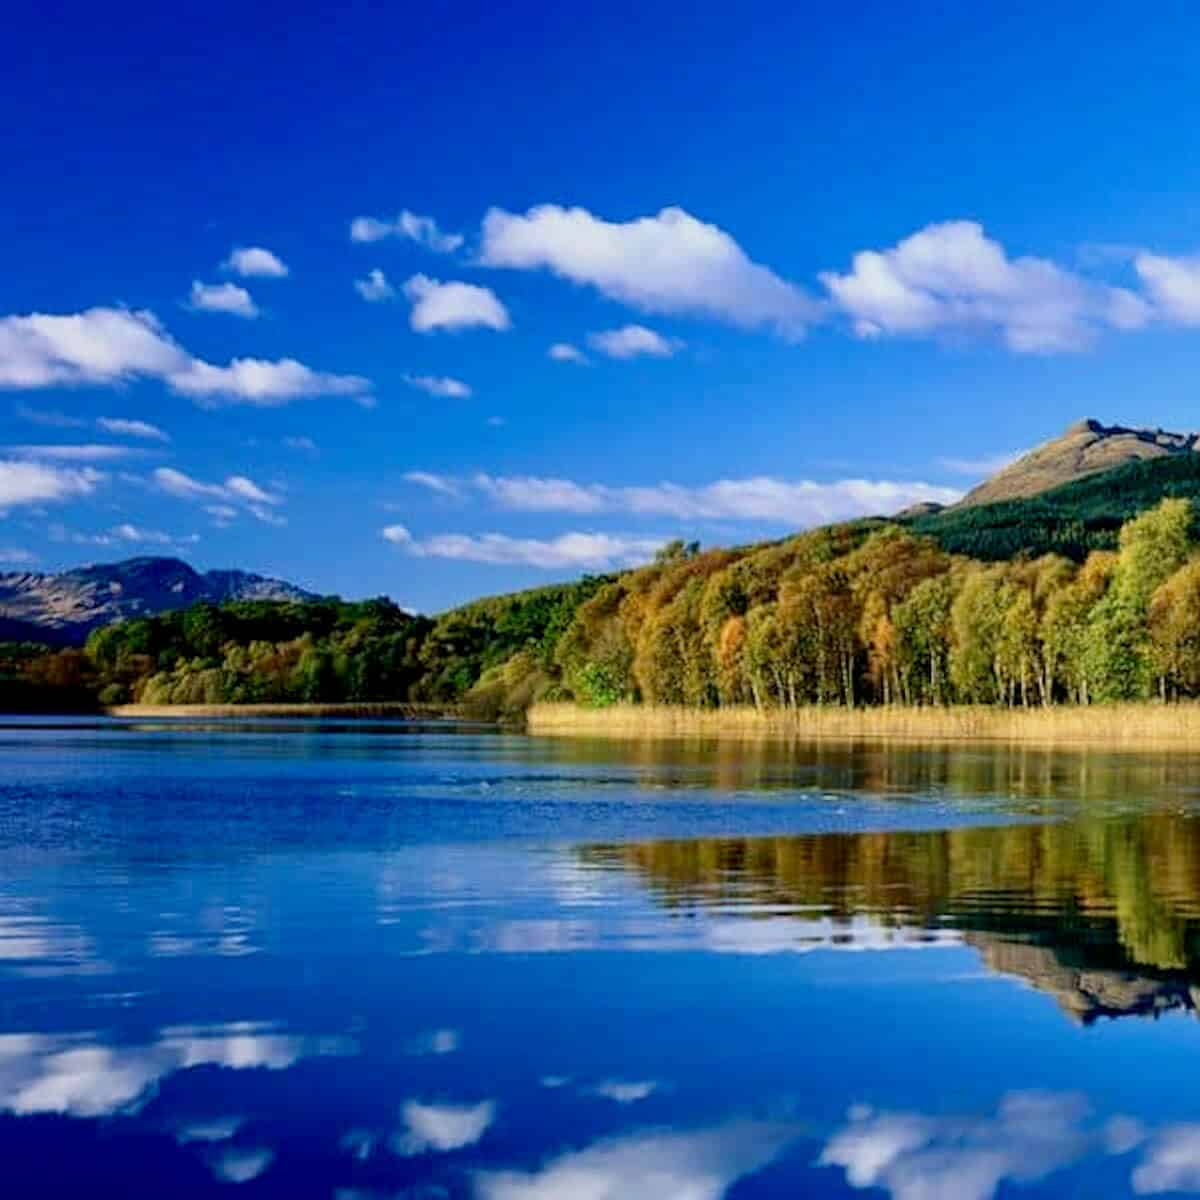 Scene of Scotland's Loch Lomand water and hills.